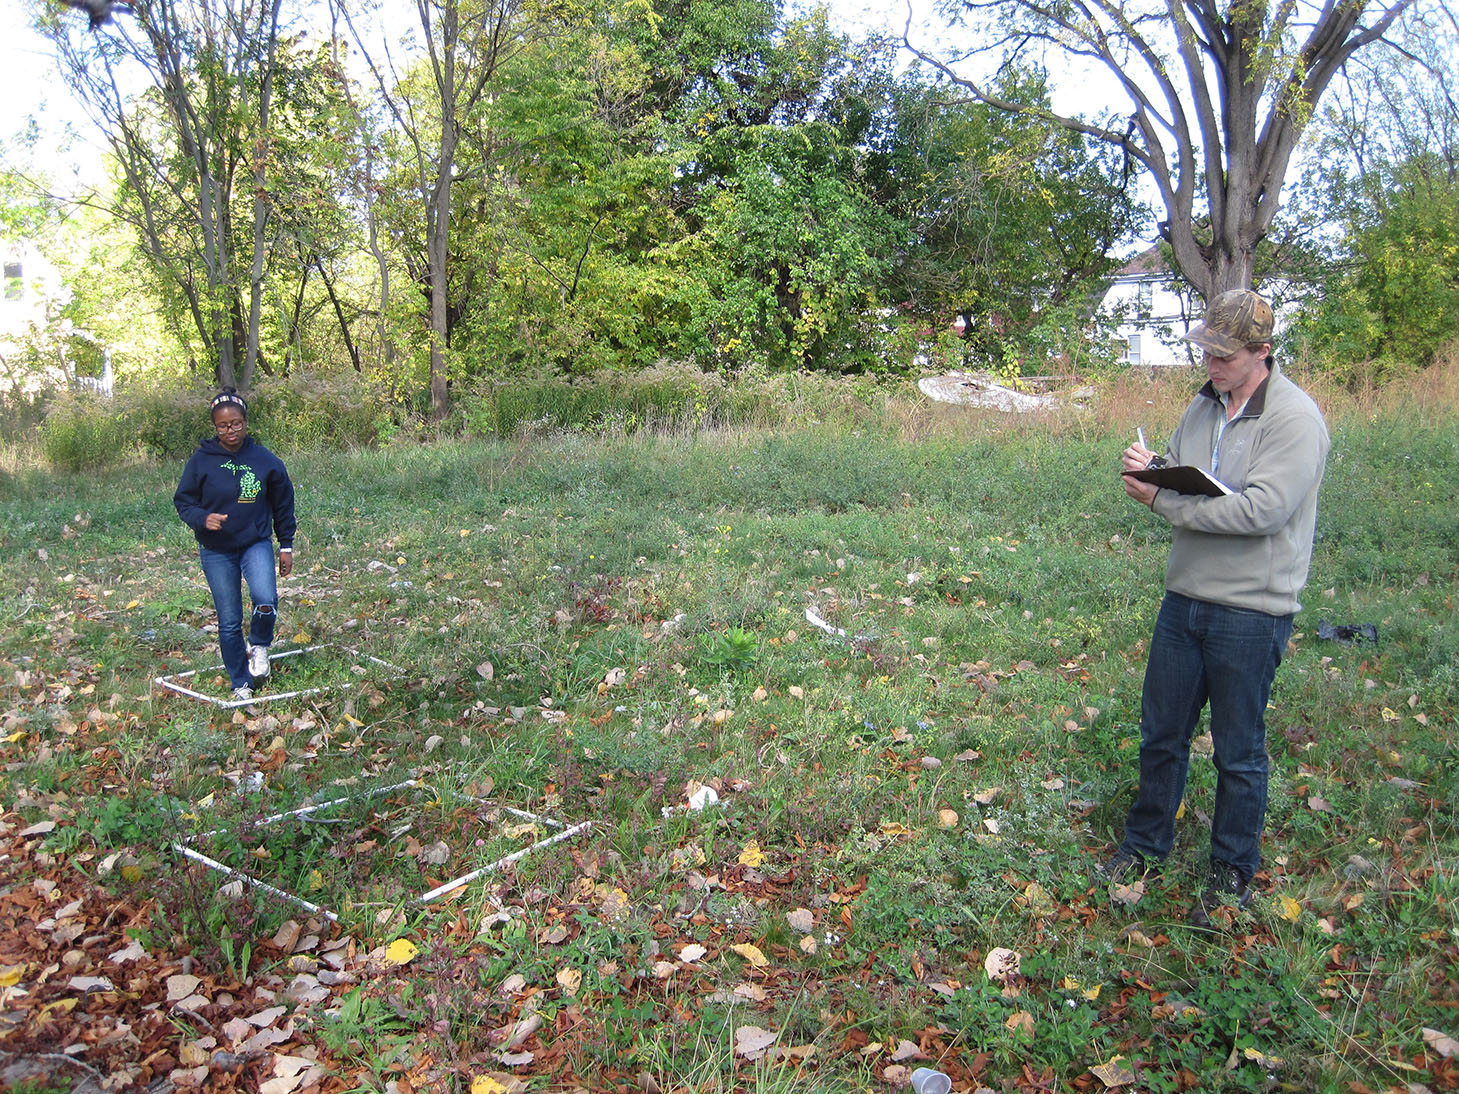 U-M researchers Tiffany Carey (left) and Ben Connor Barrie estimate ragweed density in vegetation plots on a vacant lot in Detroit. Image credit: Daniel Katz